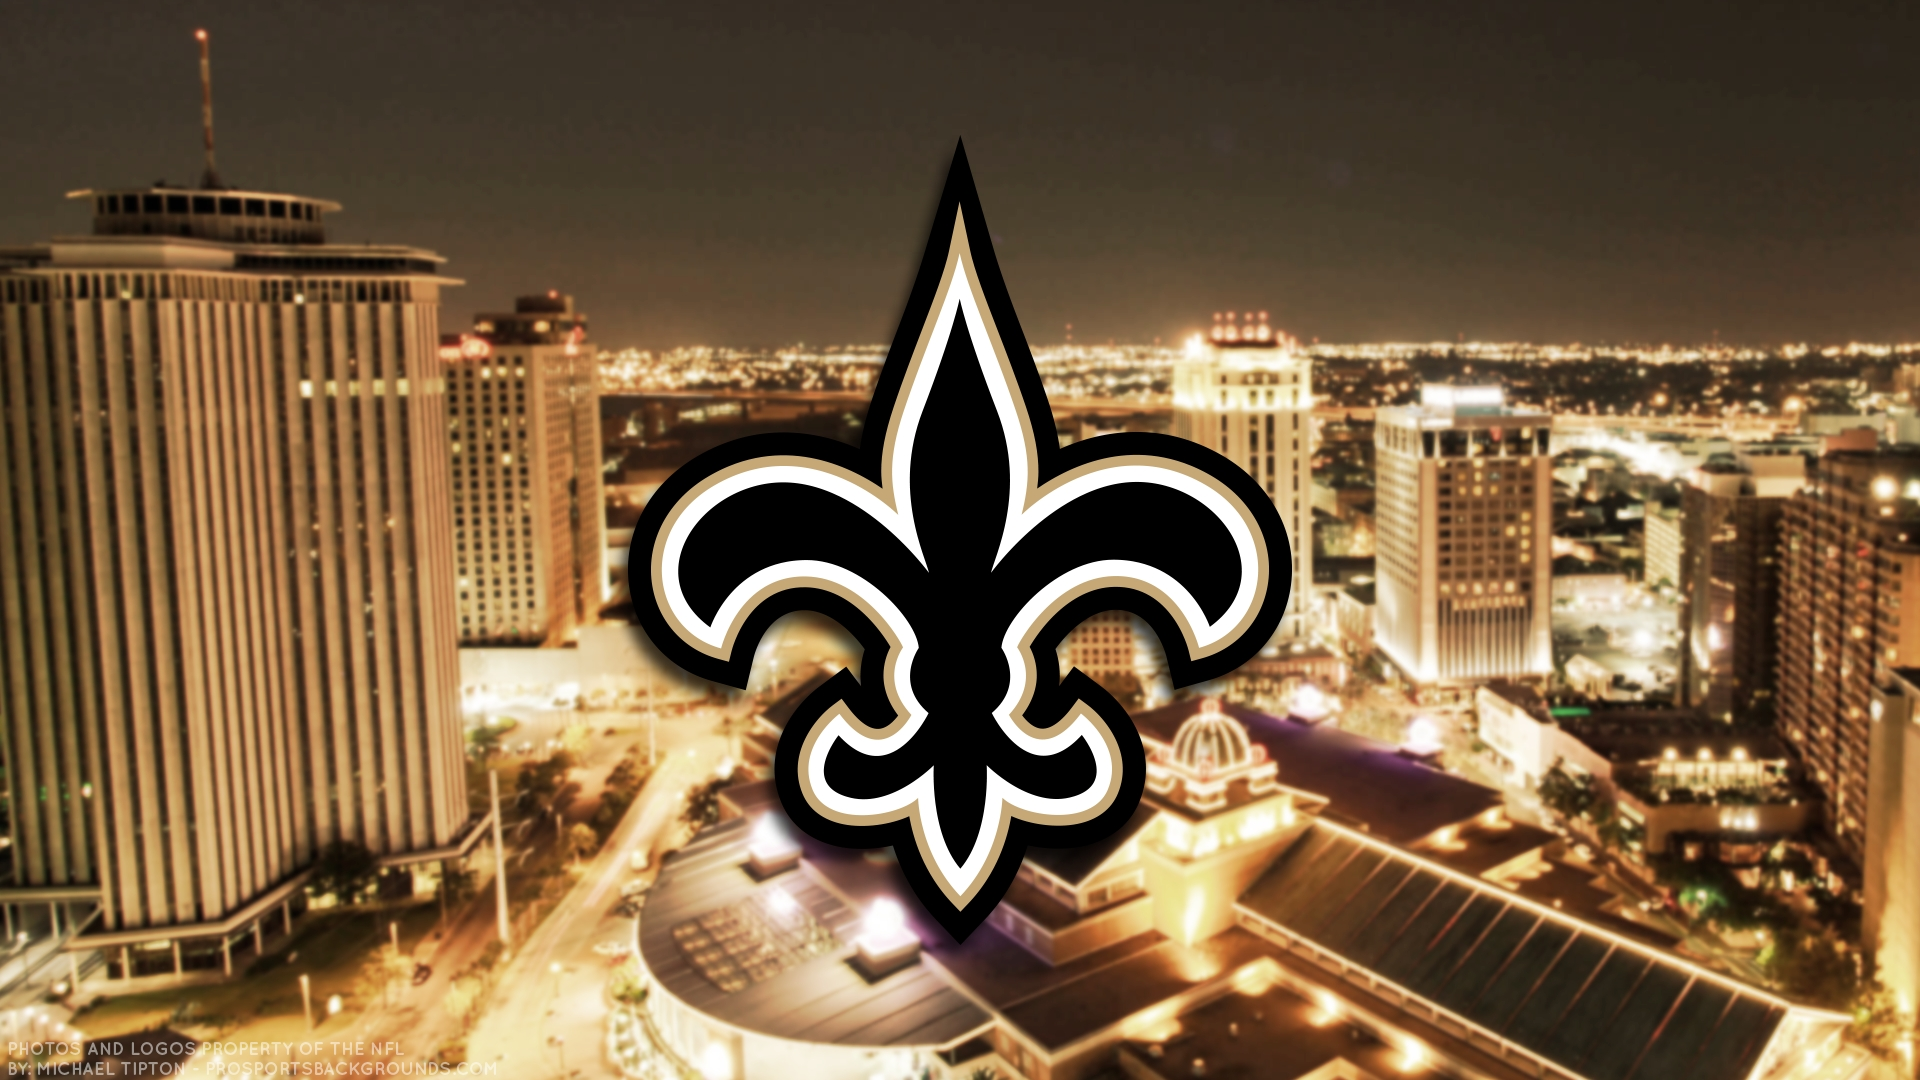 2018 new orleans saints wallpapers - pc |iphone| android